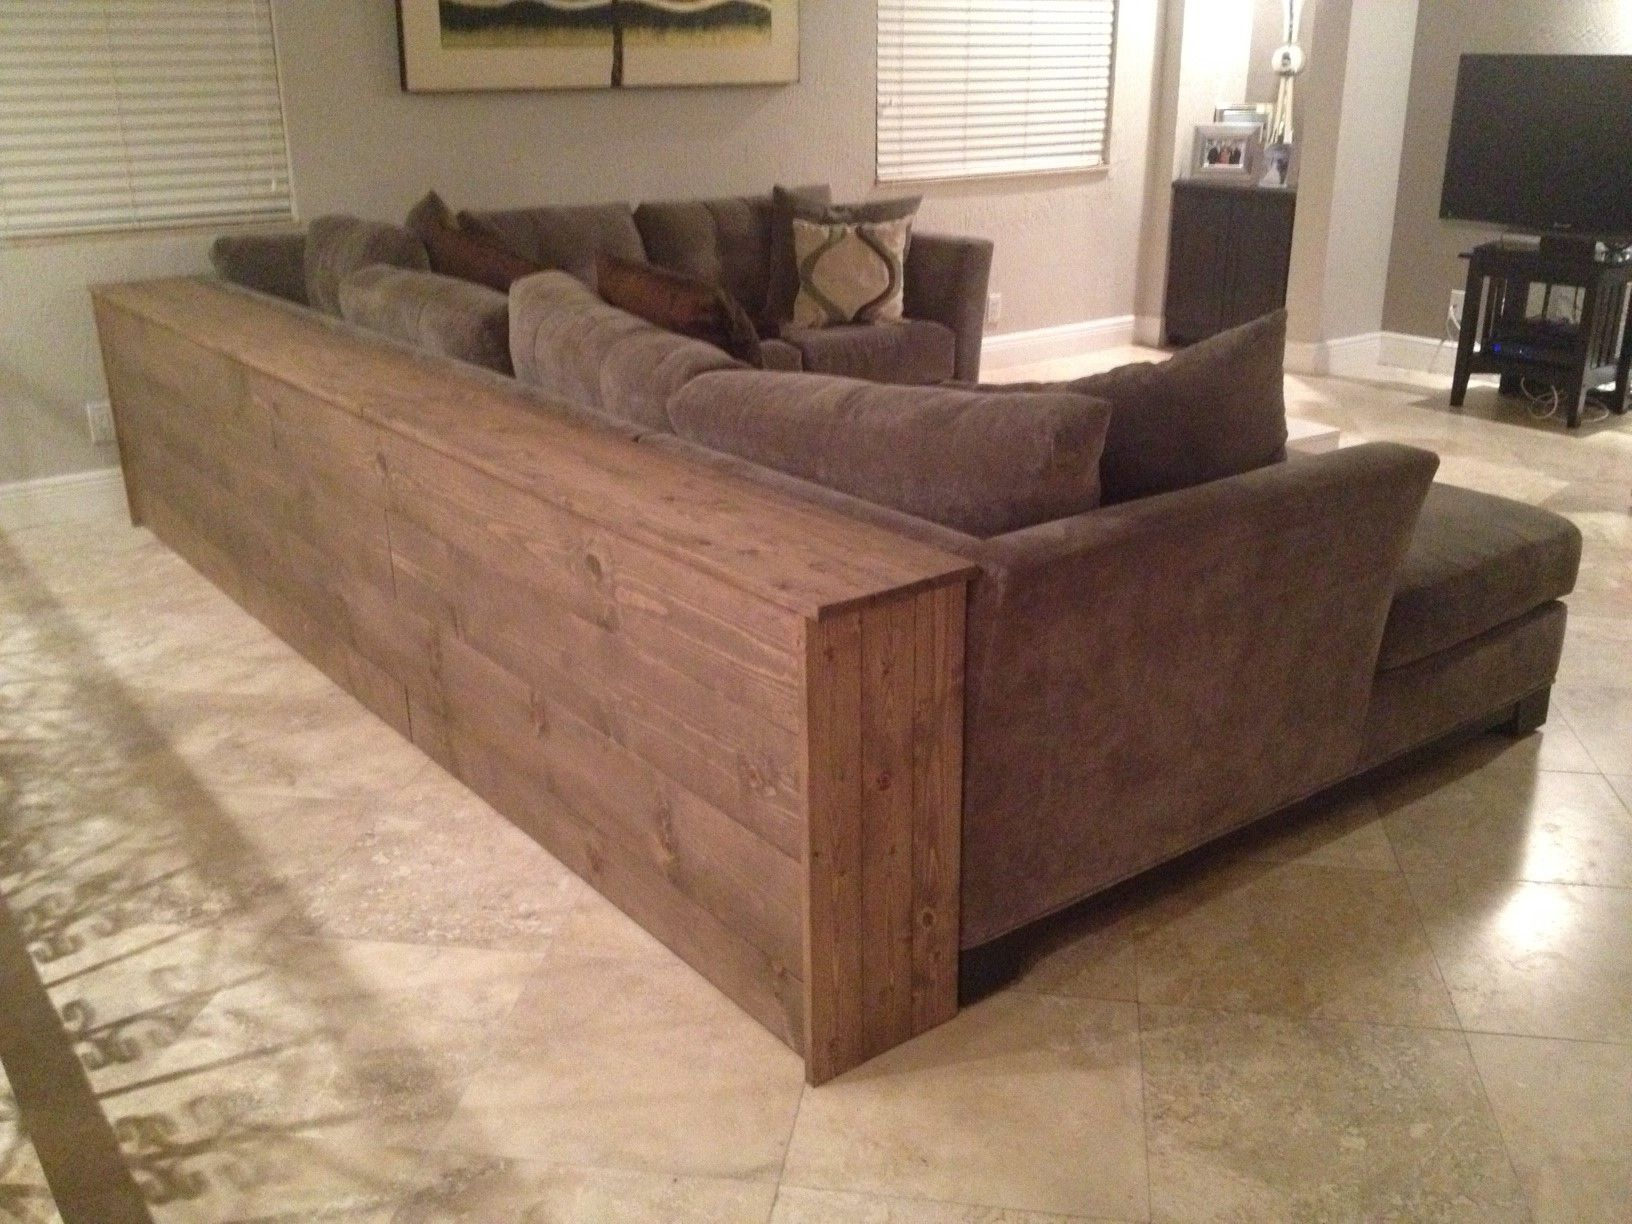 wooden sectional sofa lifestyle solutions lexington bed wood table custom made couch furniture